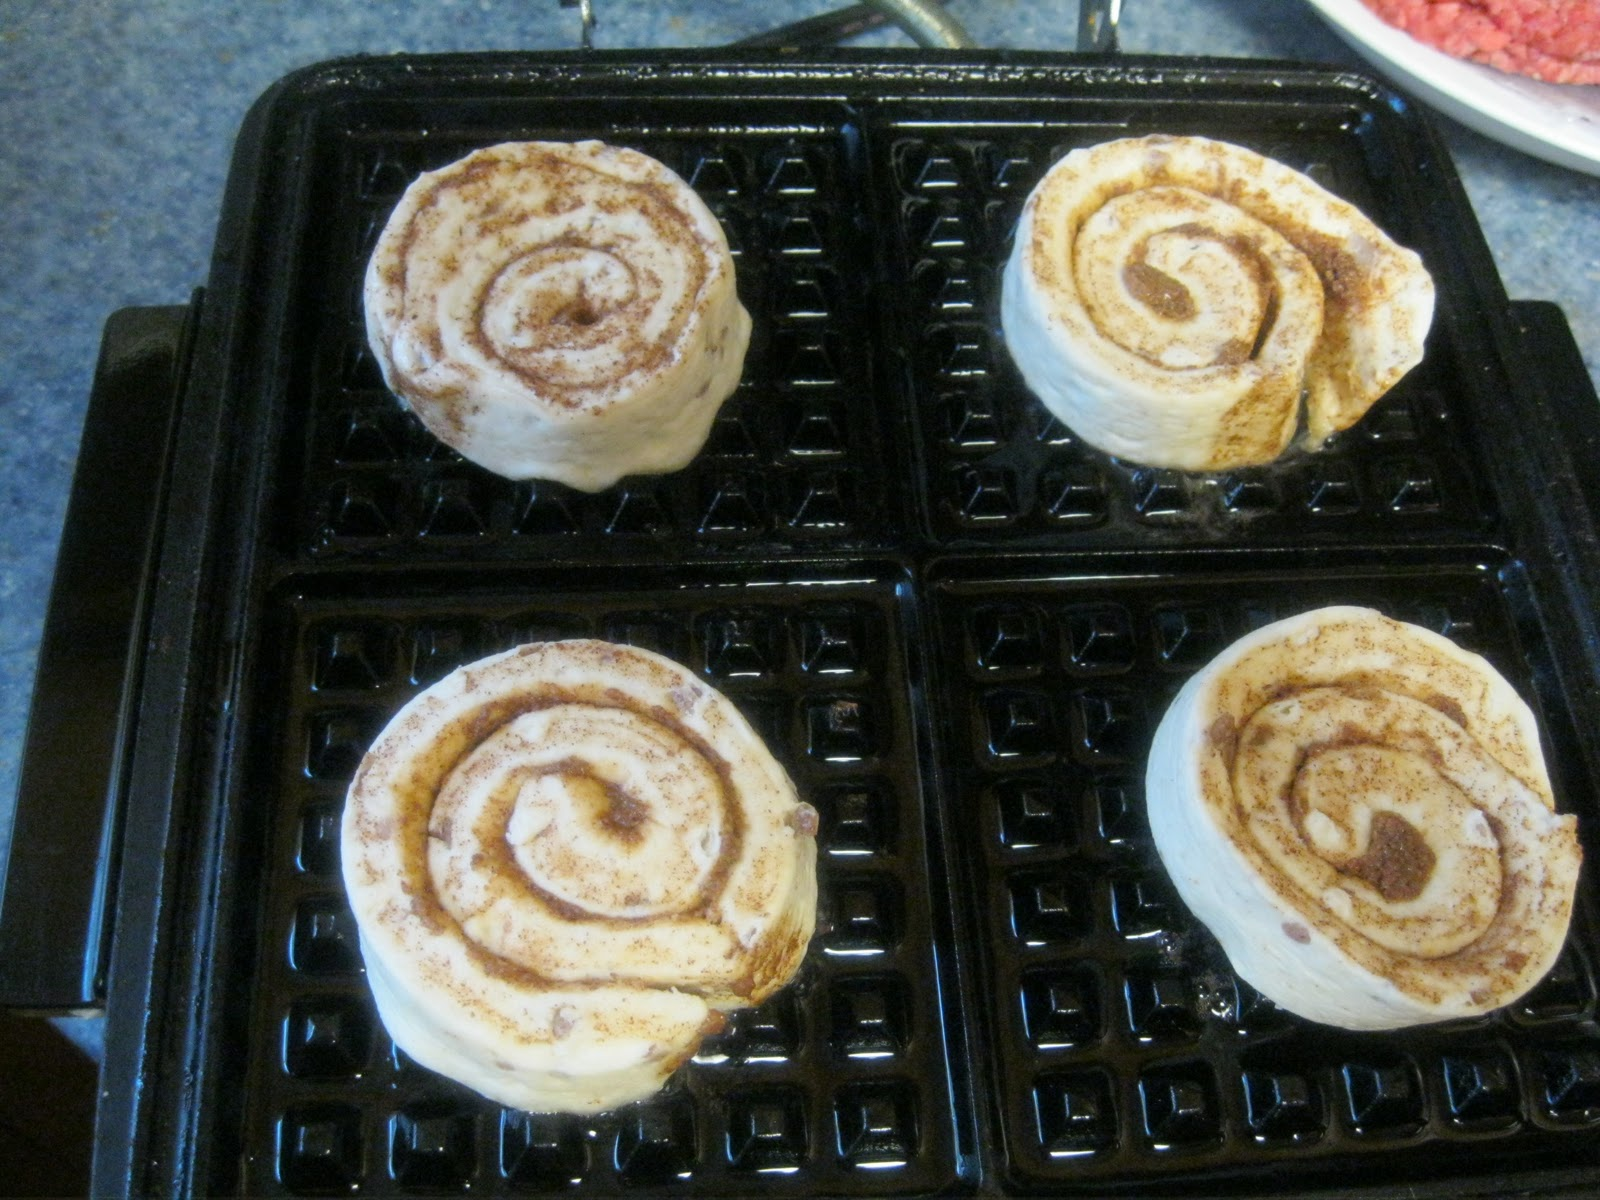 The Frugal Pantry: 5 Minute Cinnamon Roll Waffles